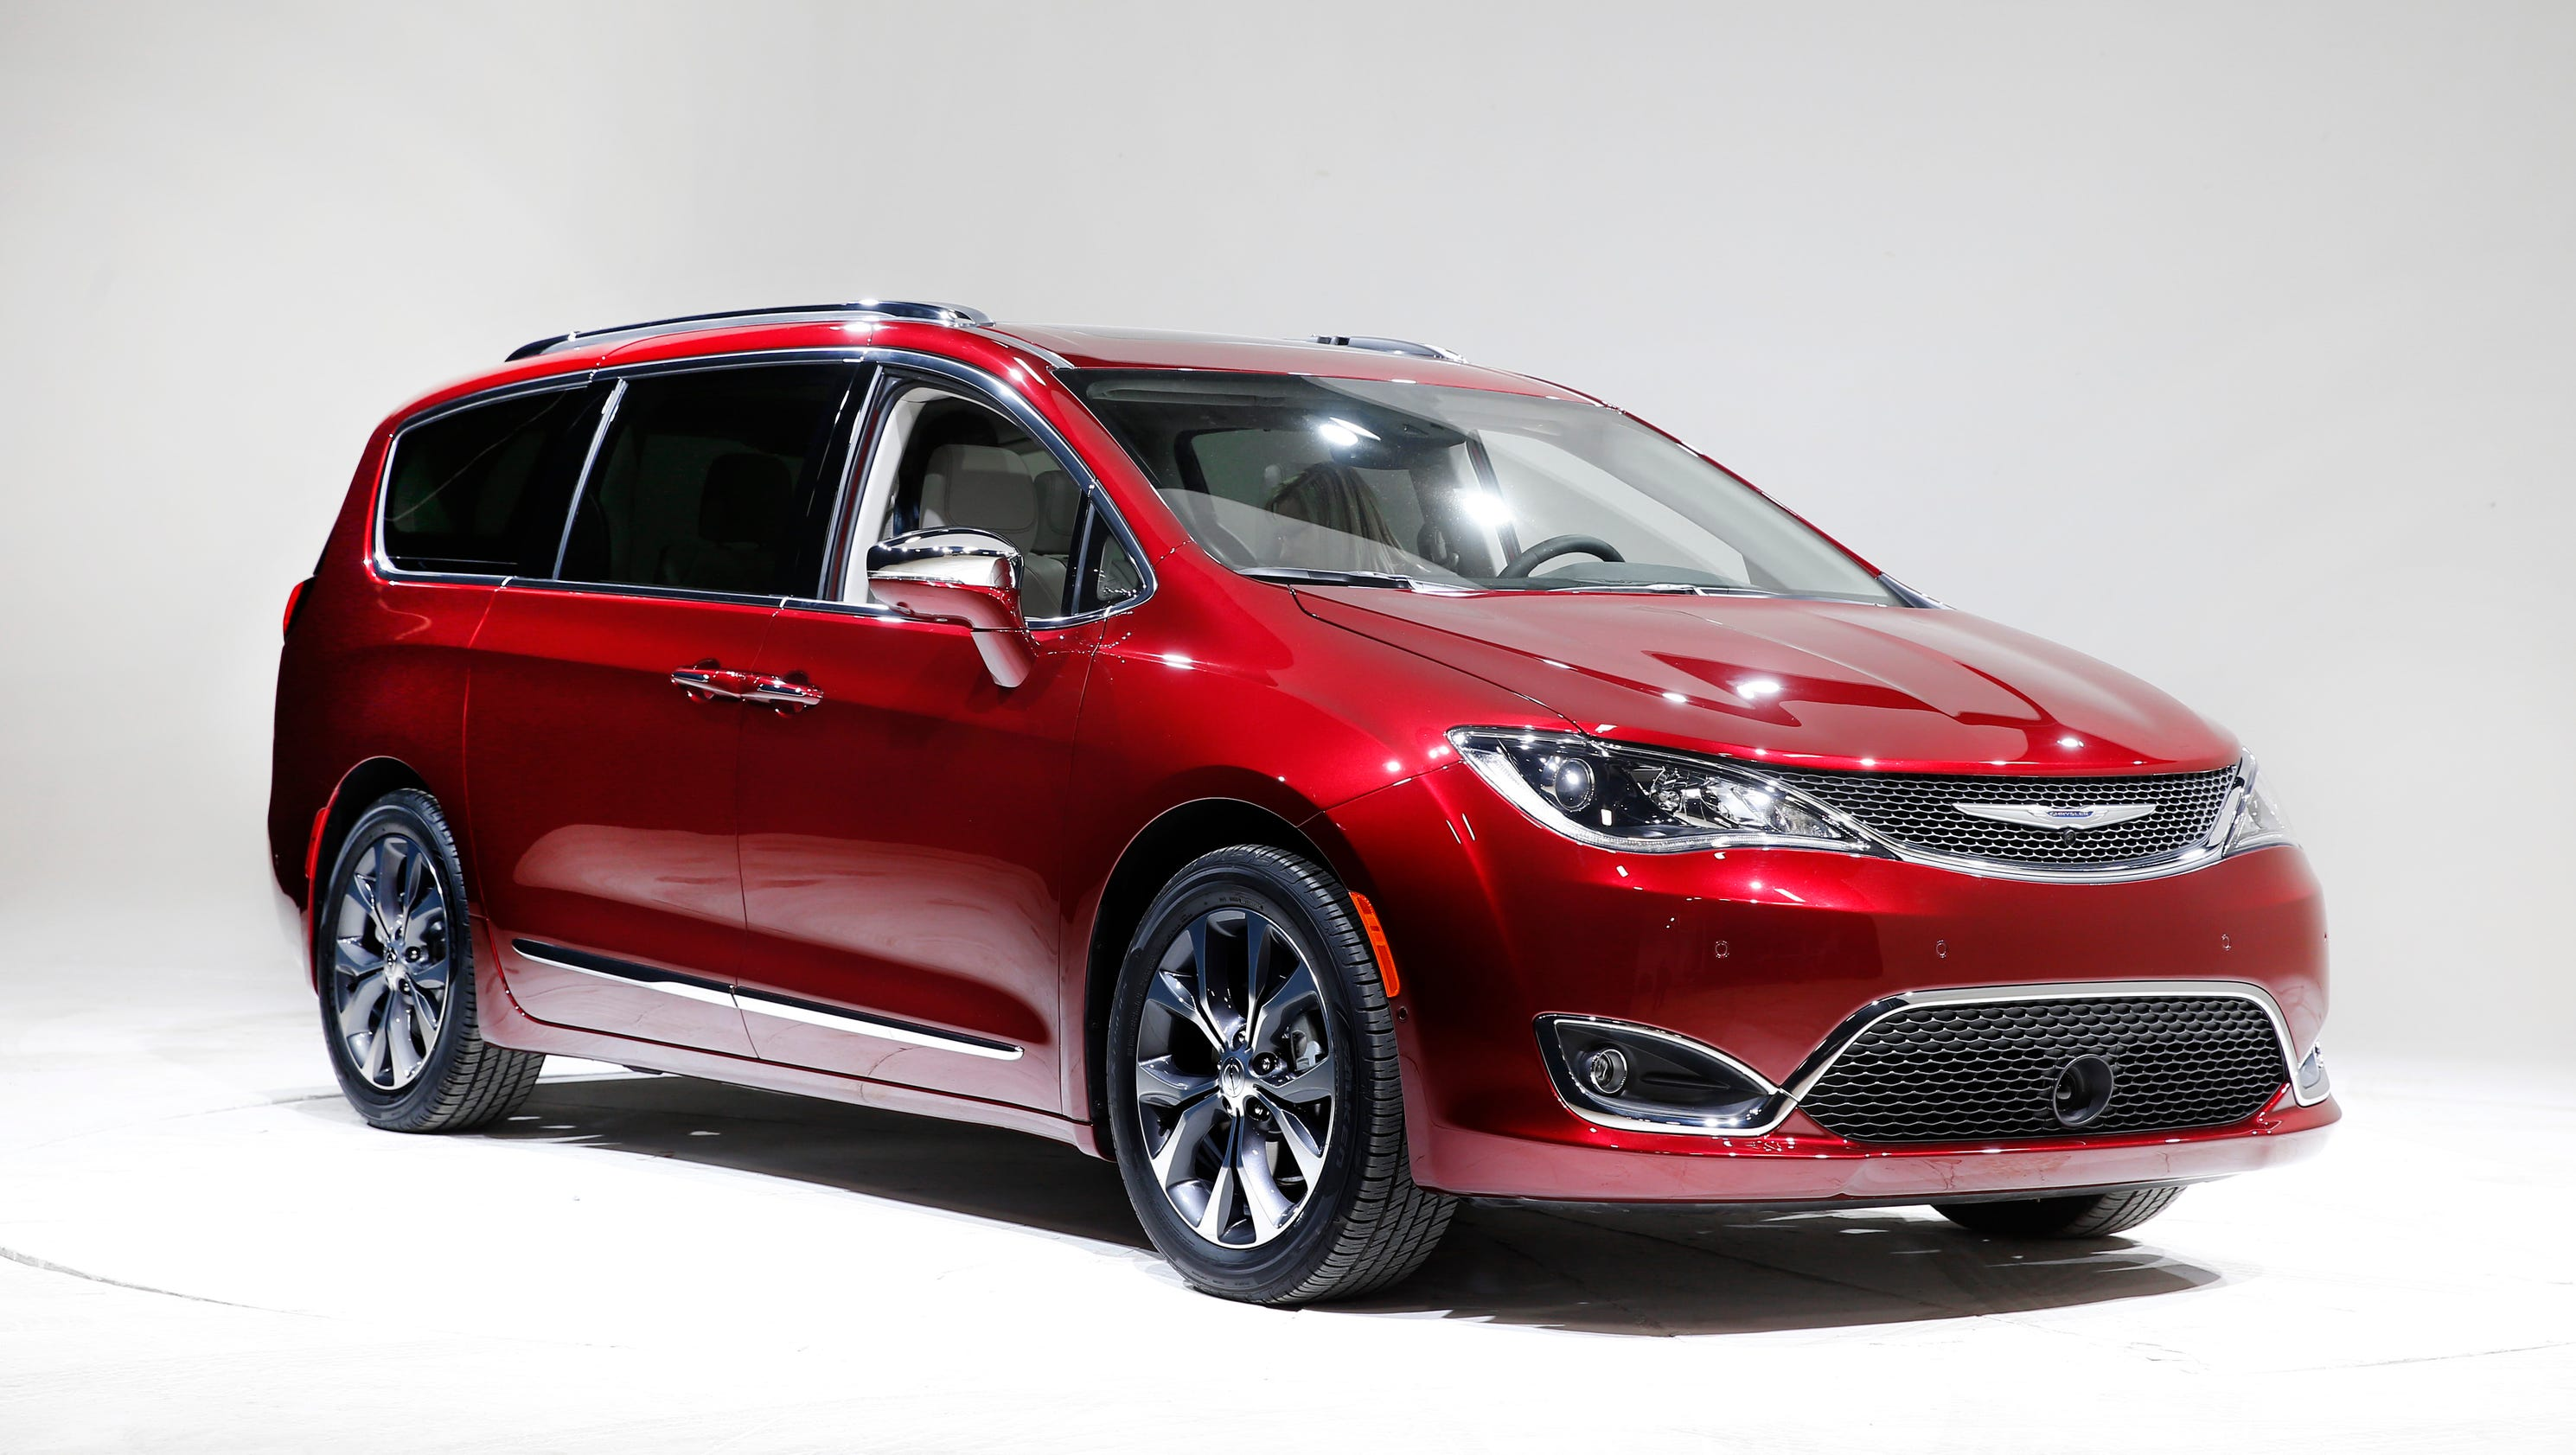 Photos: 2017 Chrysler Pacifica